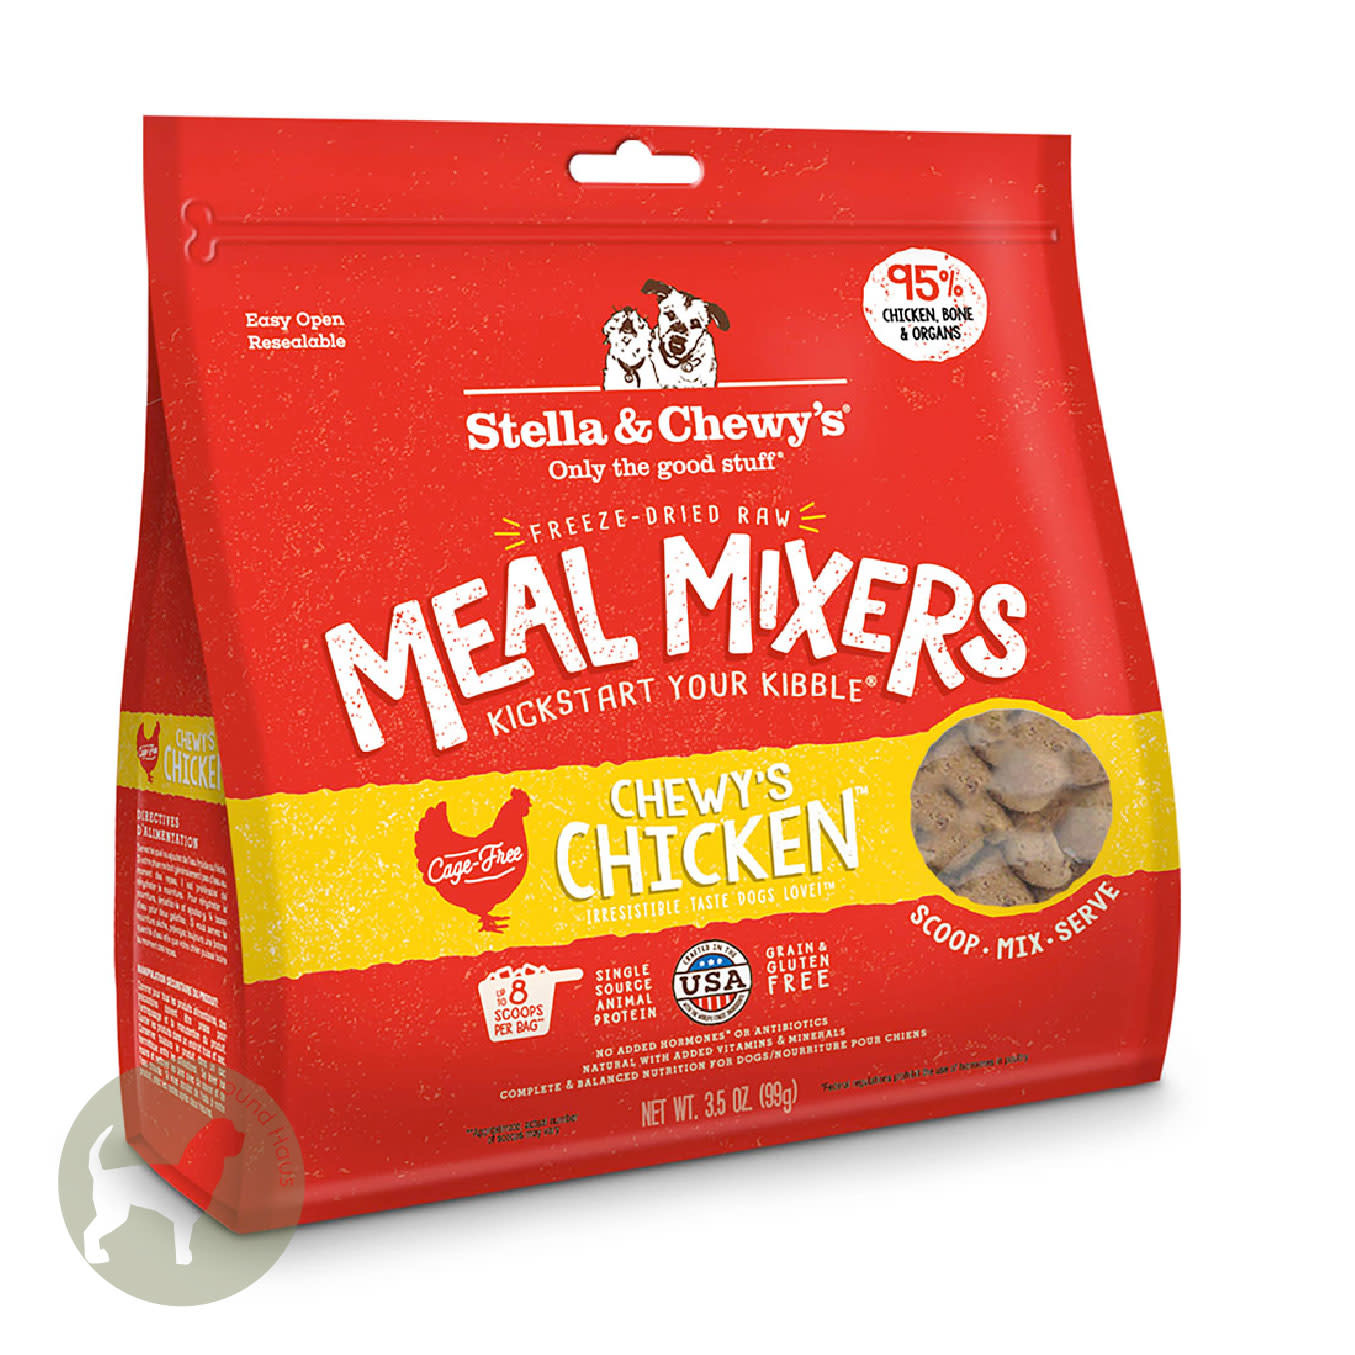 Stella & Chewy's Stella & Chewy's Meal Mixer Chewy's Chicken, 18oz